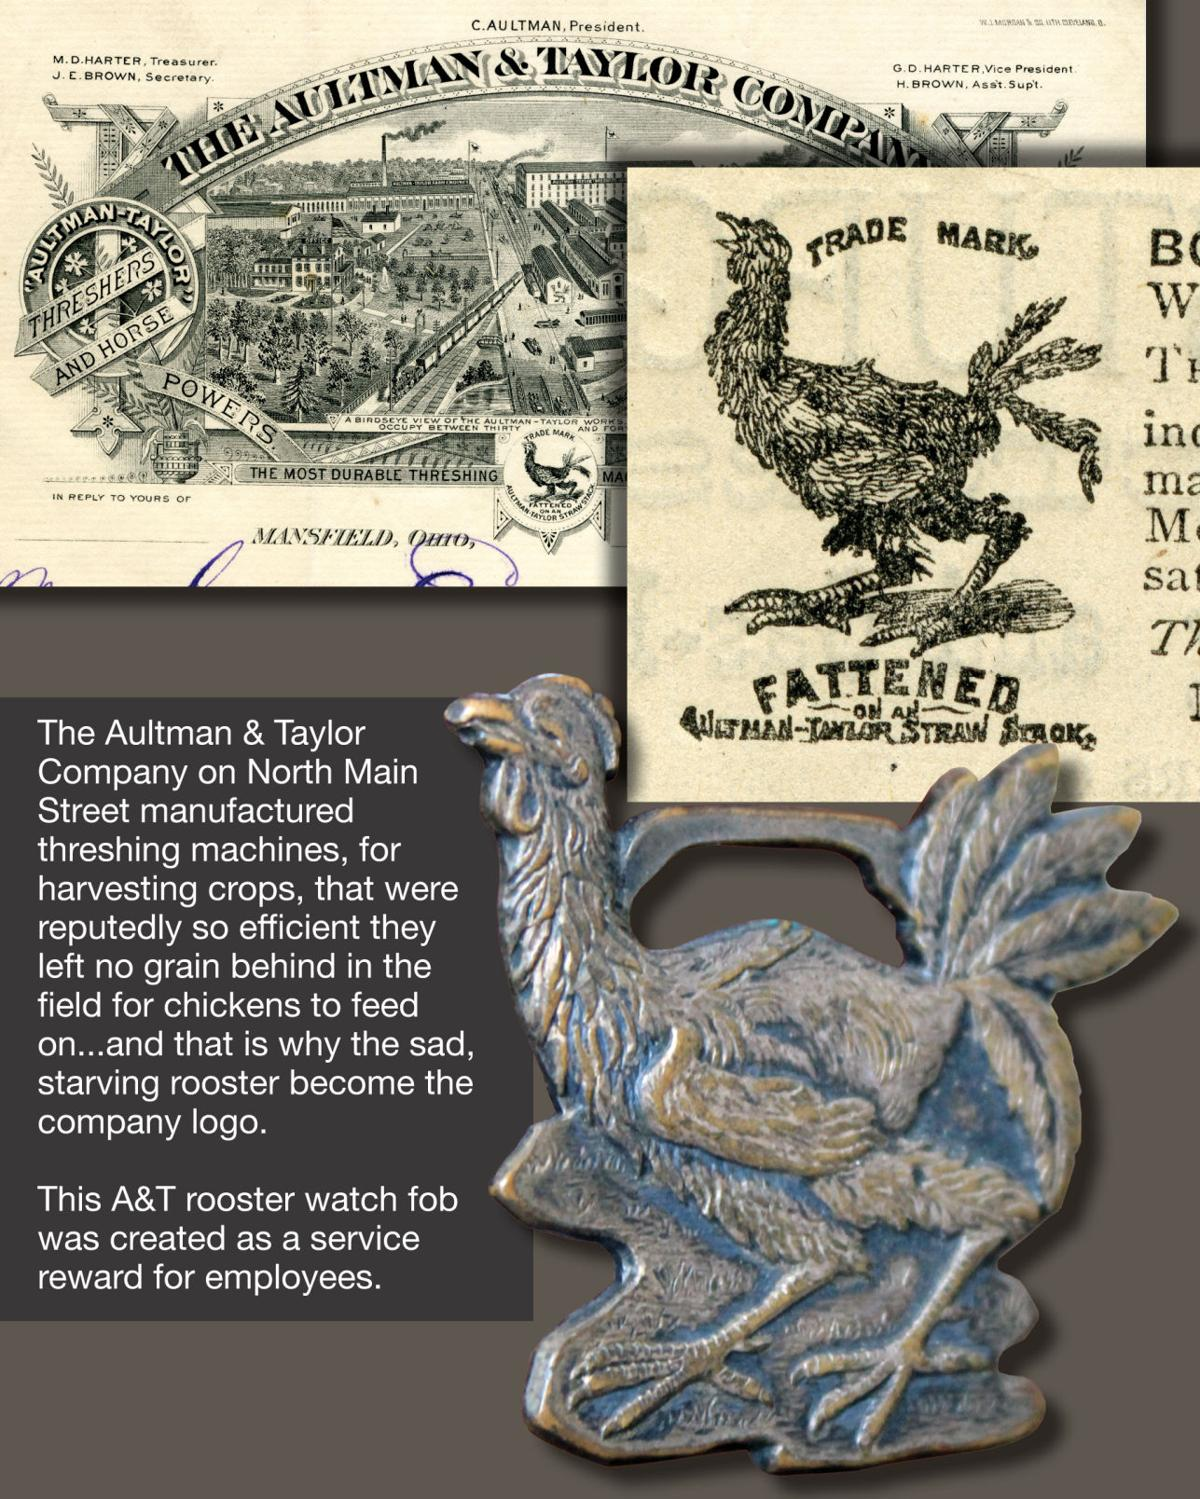 Starving rooster of Aultman & Taylor